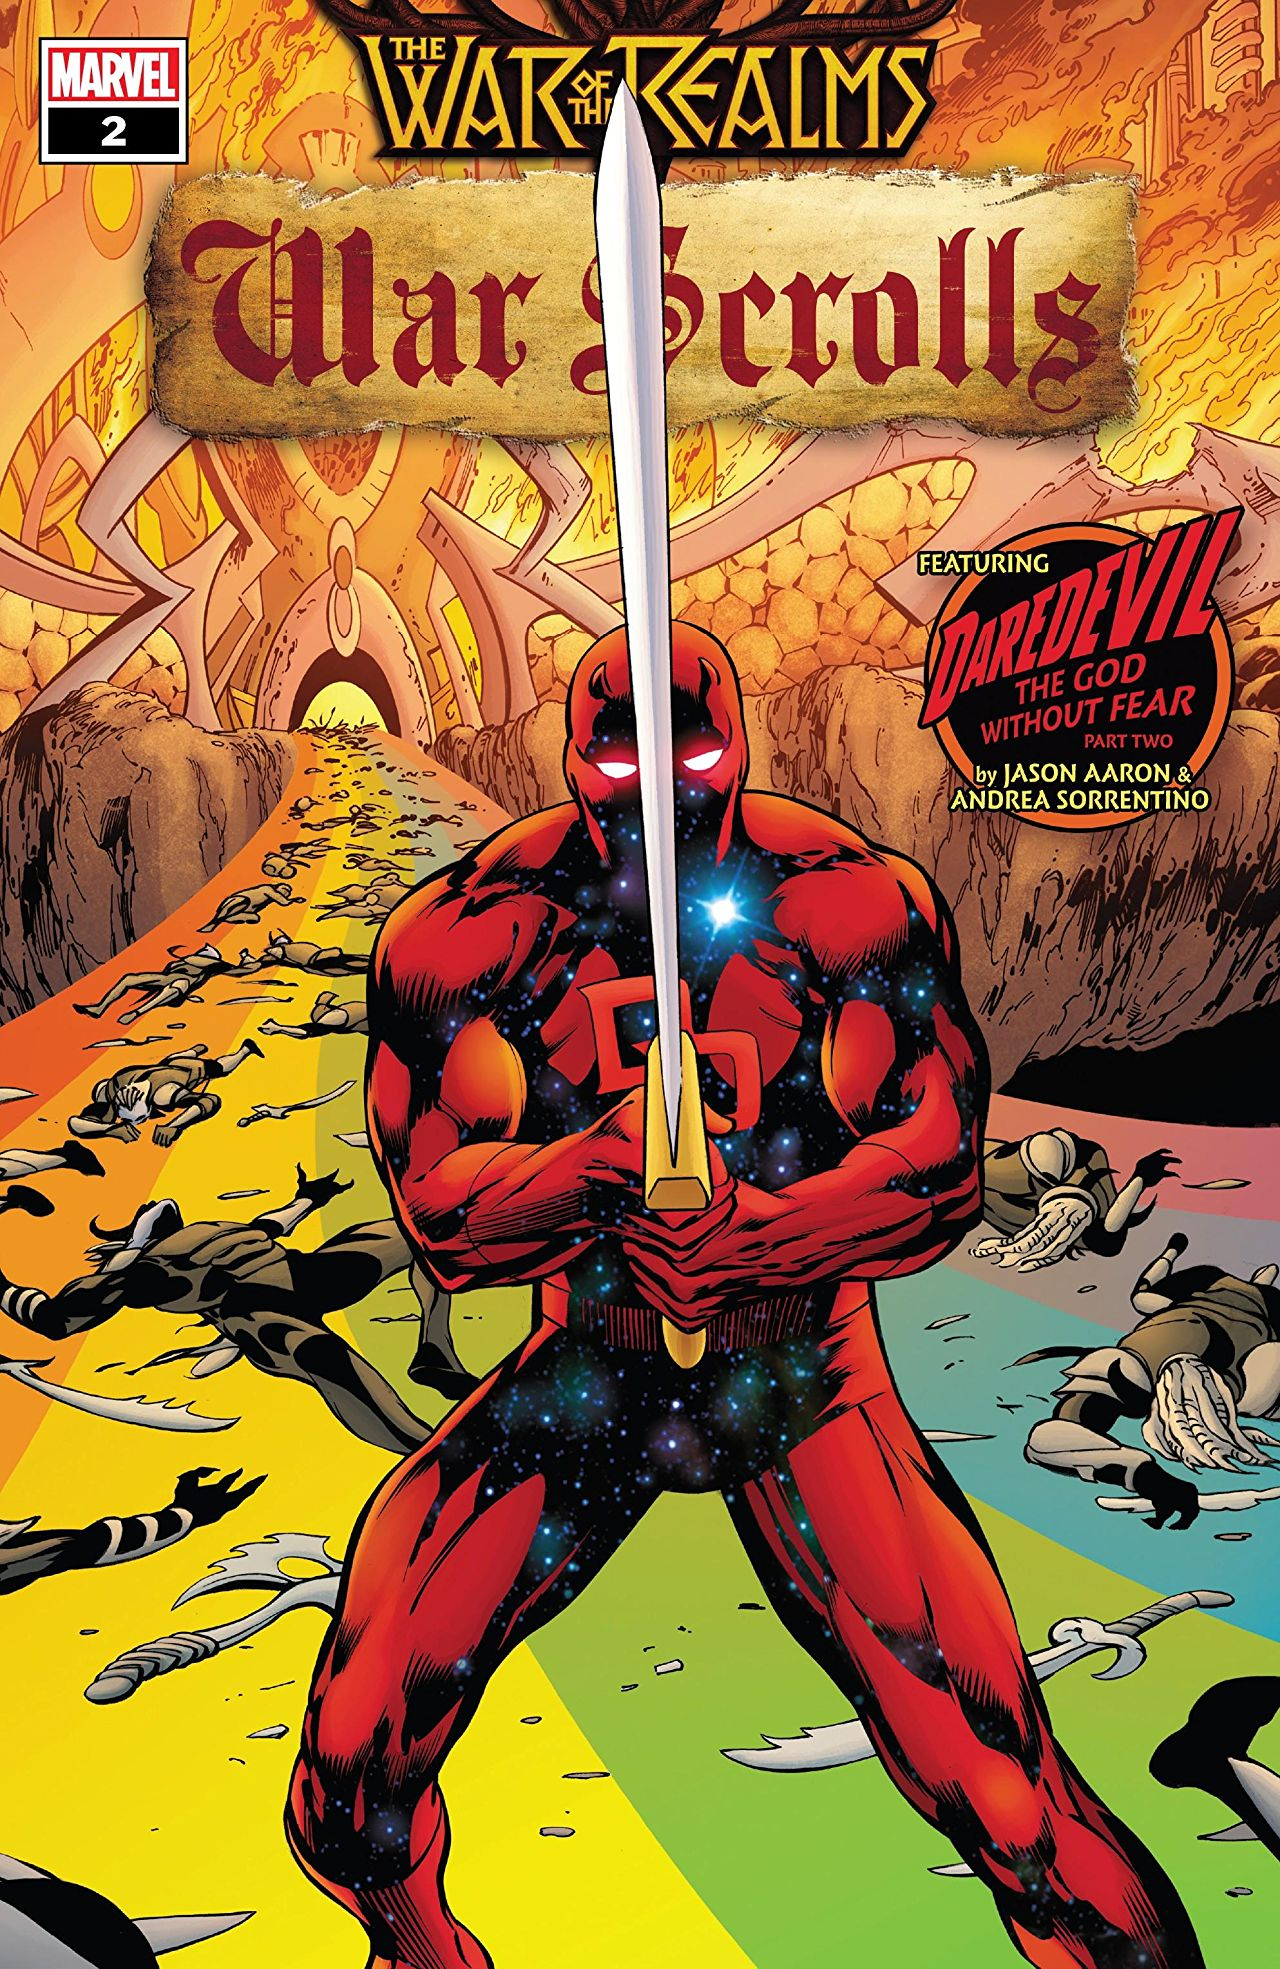 THE MUST-READ COMPANION TO THE WAR OF THE REALMS!